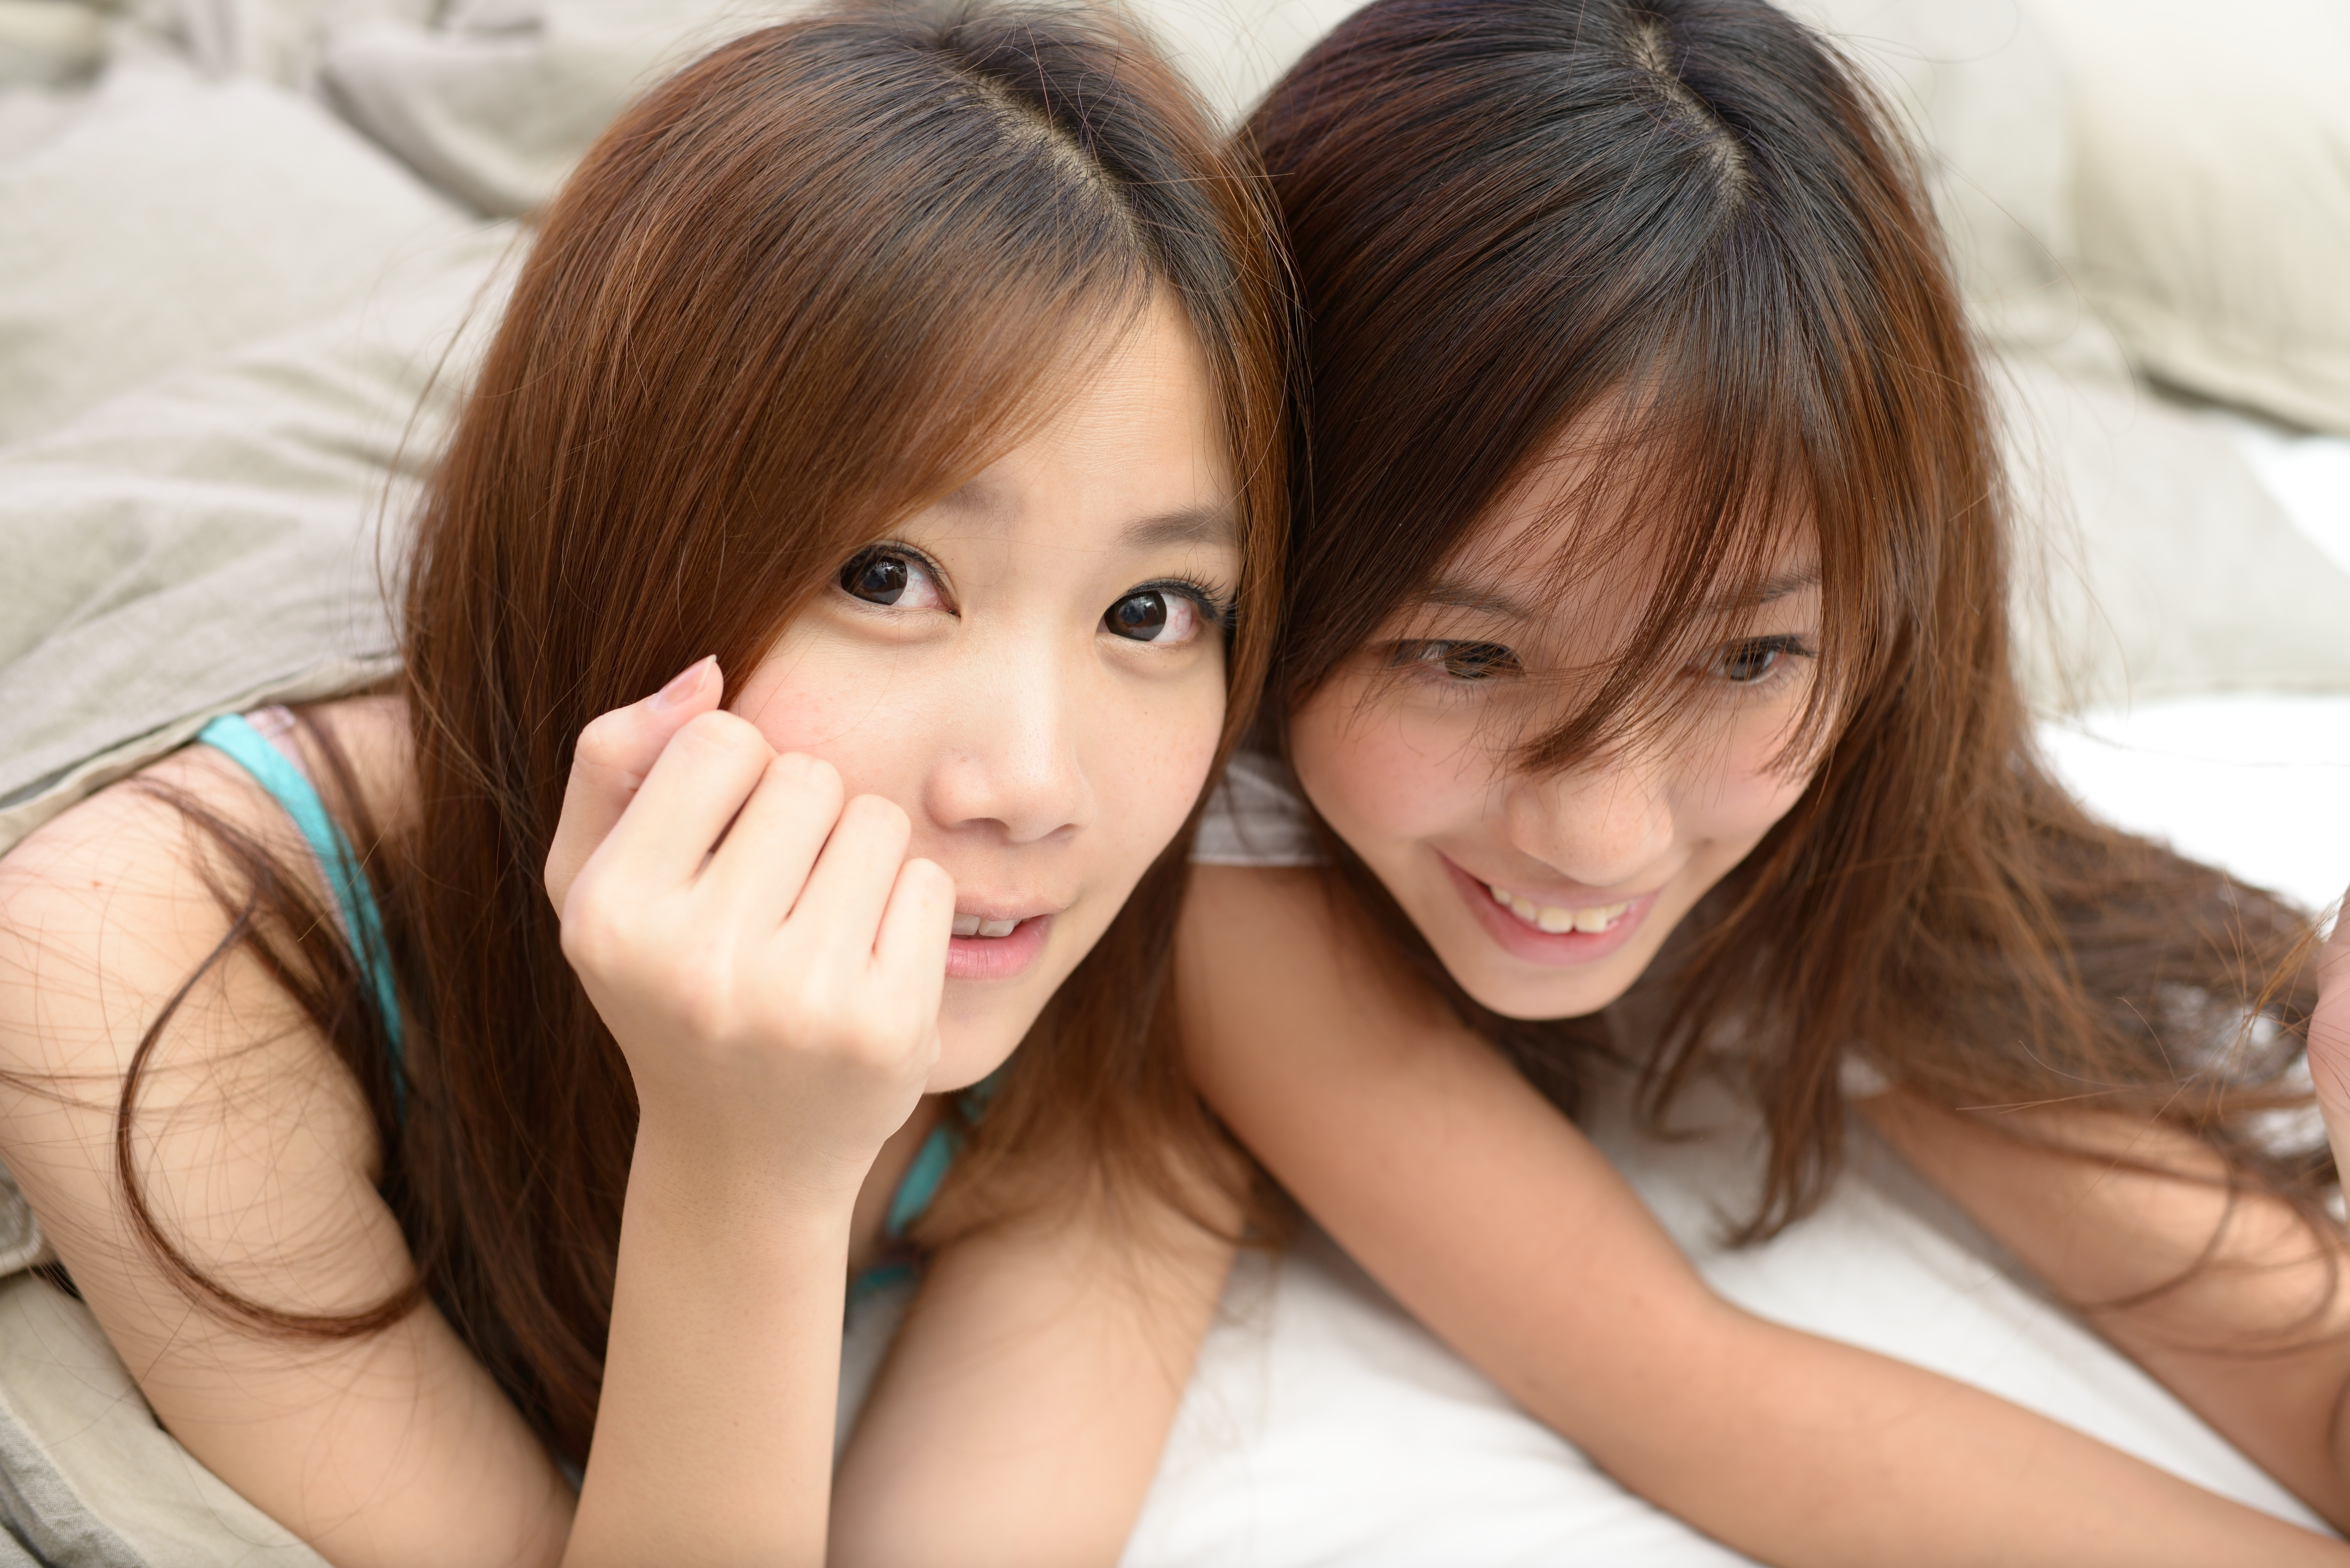 downs asian personals Sweet asian dating, asian dating sites, profiles, pictures, thai dating and thai girls at asian dating for true love and marriage.